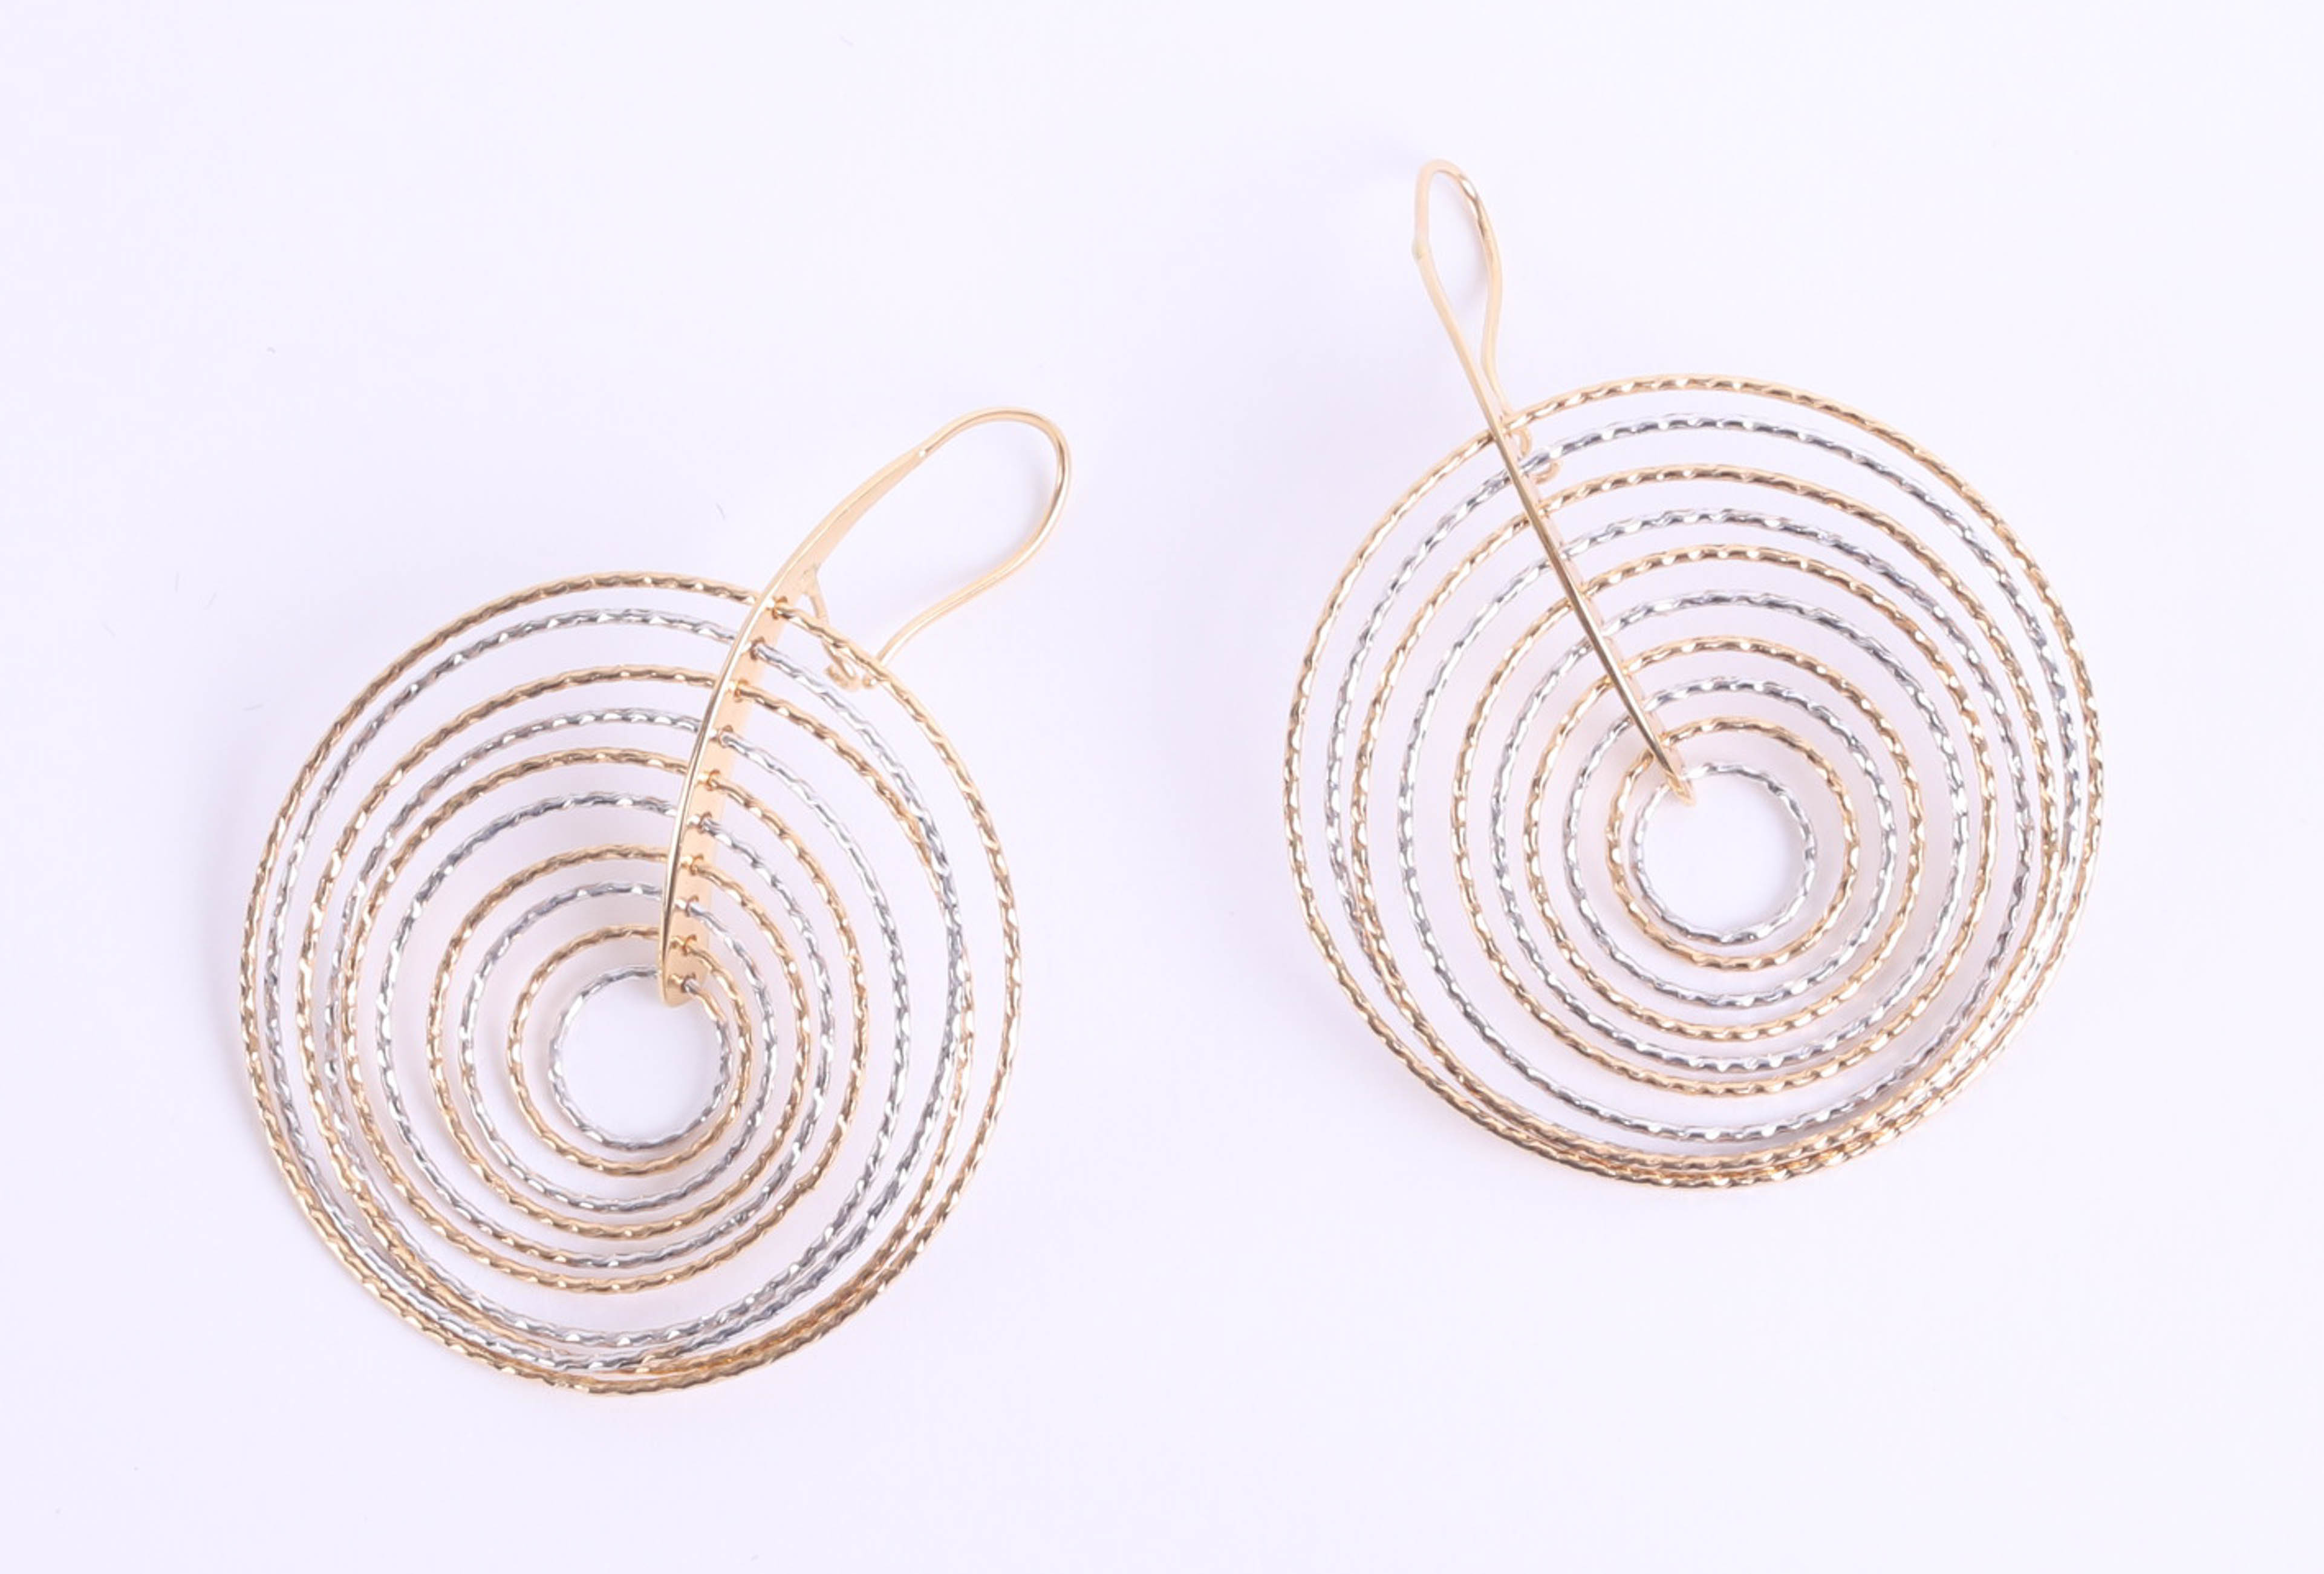 Lot 041 - A pair of 18ct mixed coloured gold earrings of descending hoop style, approximately 7.9g (